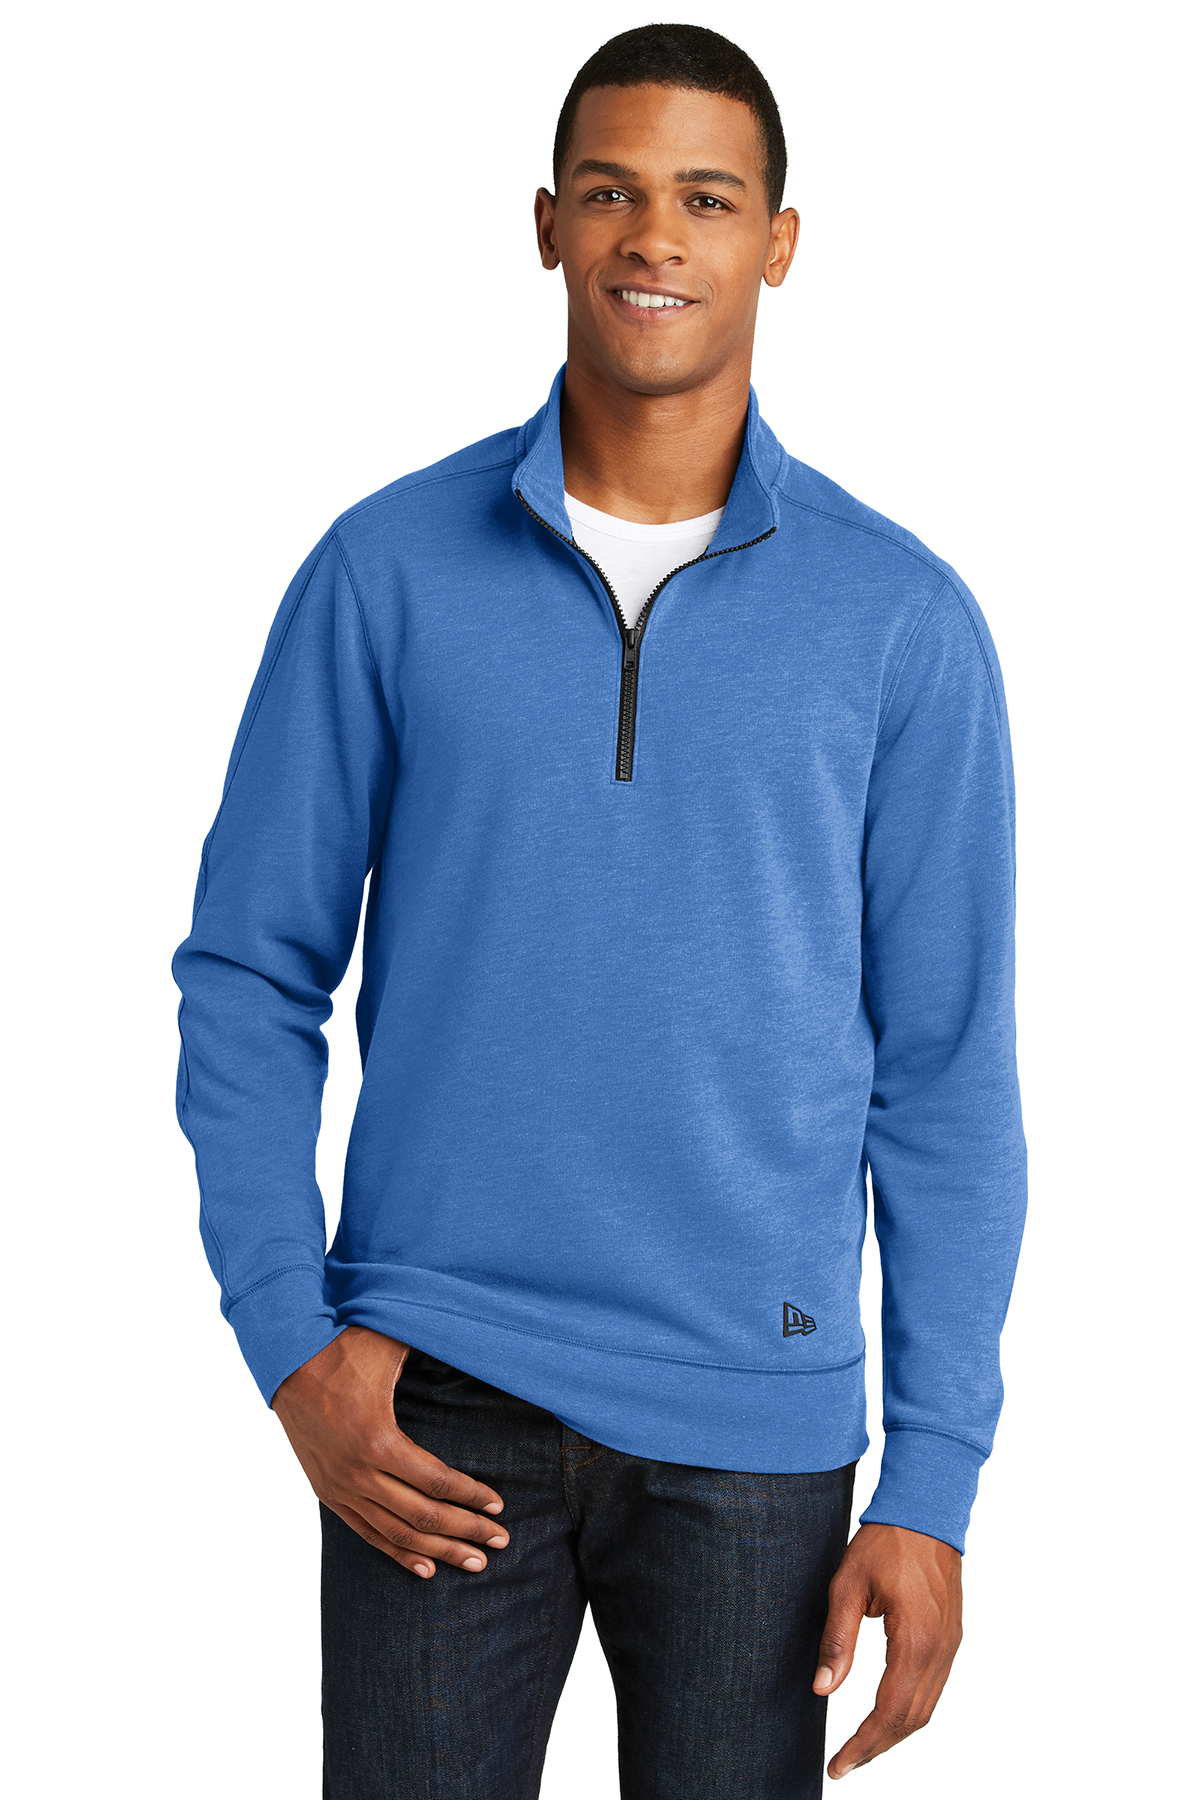 New Era NEA512 - Men's Tri-Blend Fleece 1/4 Zip Pullover